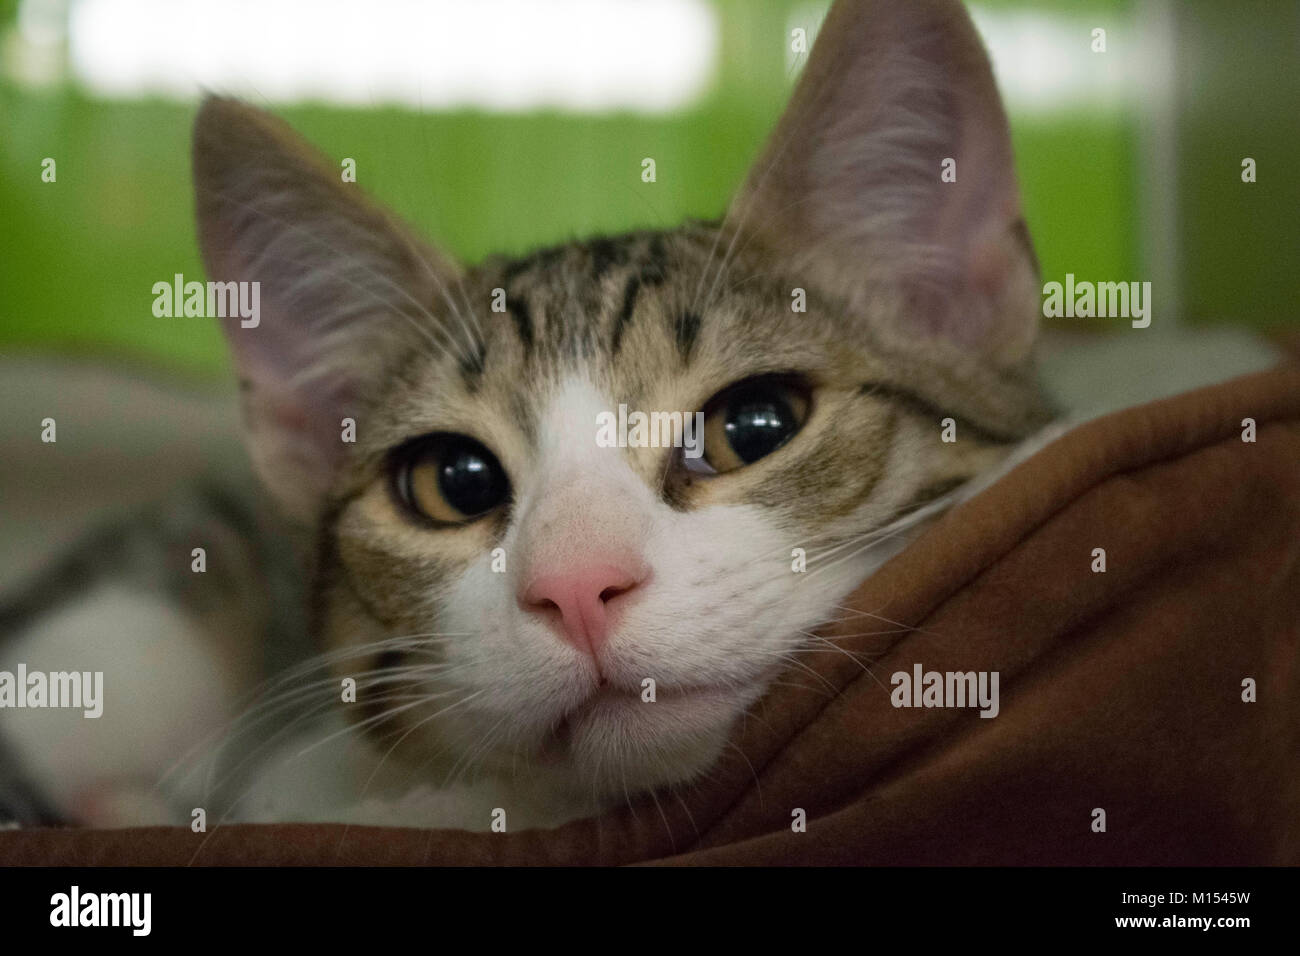 A kitten waits for adoption at the local animal shelter. - Stock Image